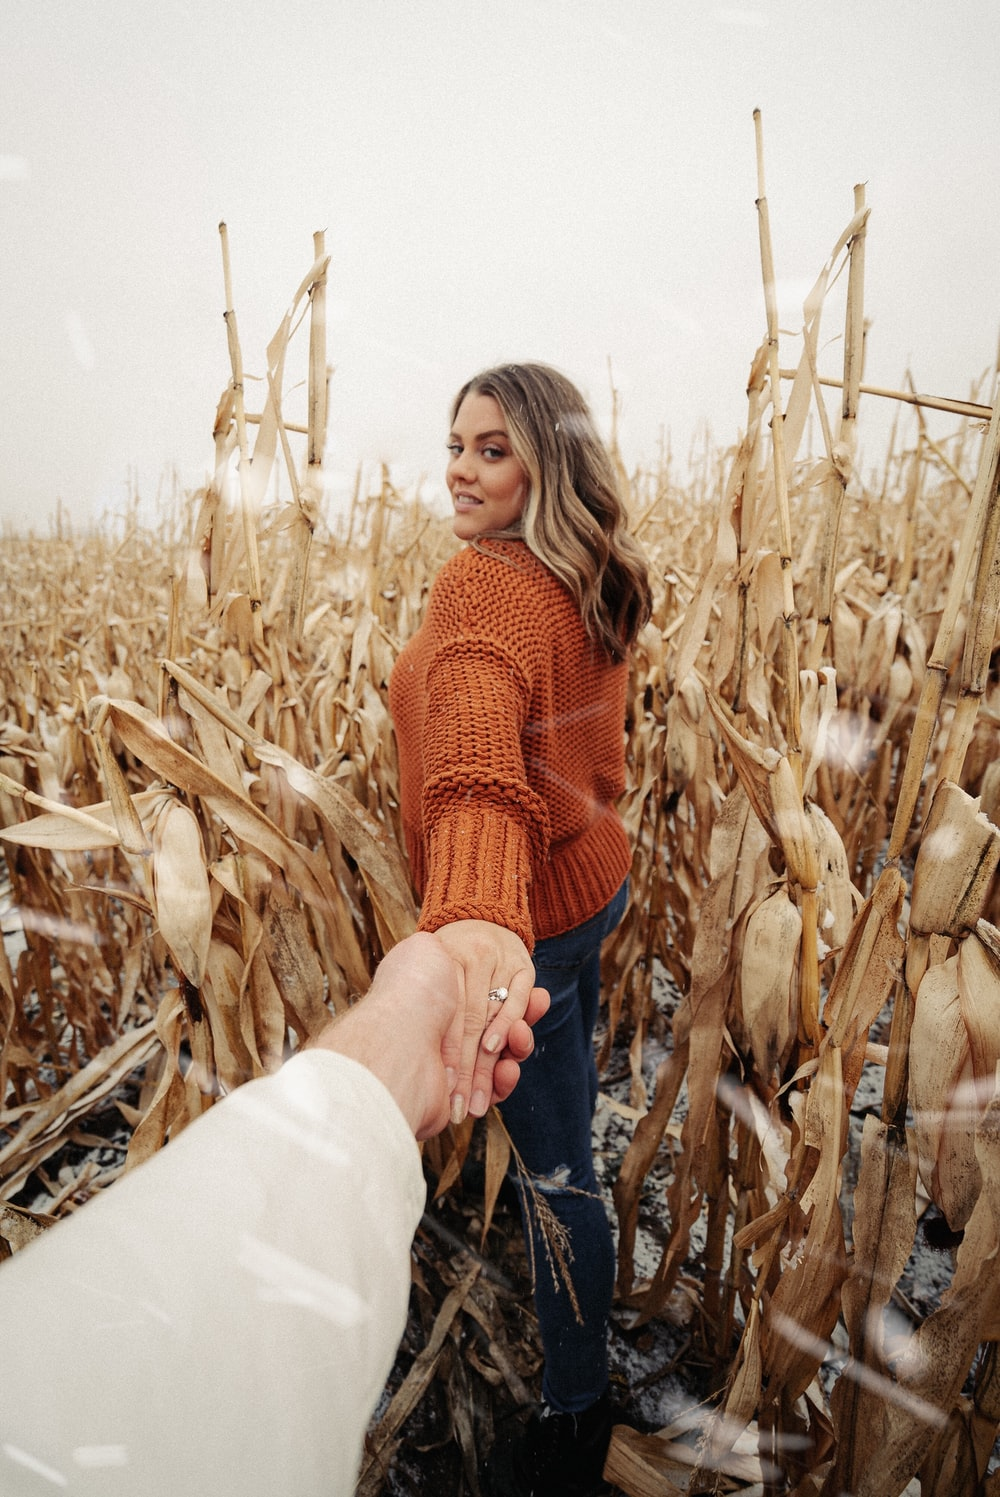 woman in red knit sweater and blue denim jeans standing on wheat field during daytime